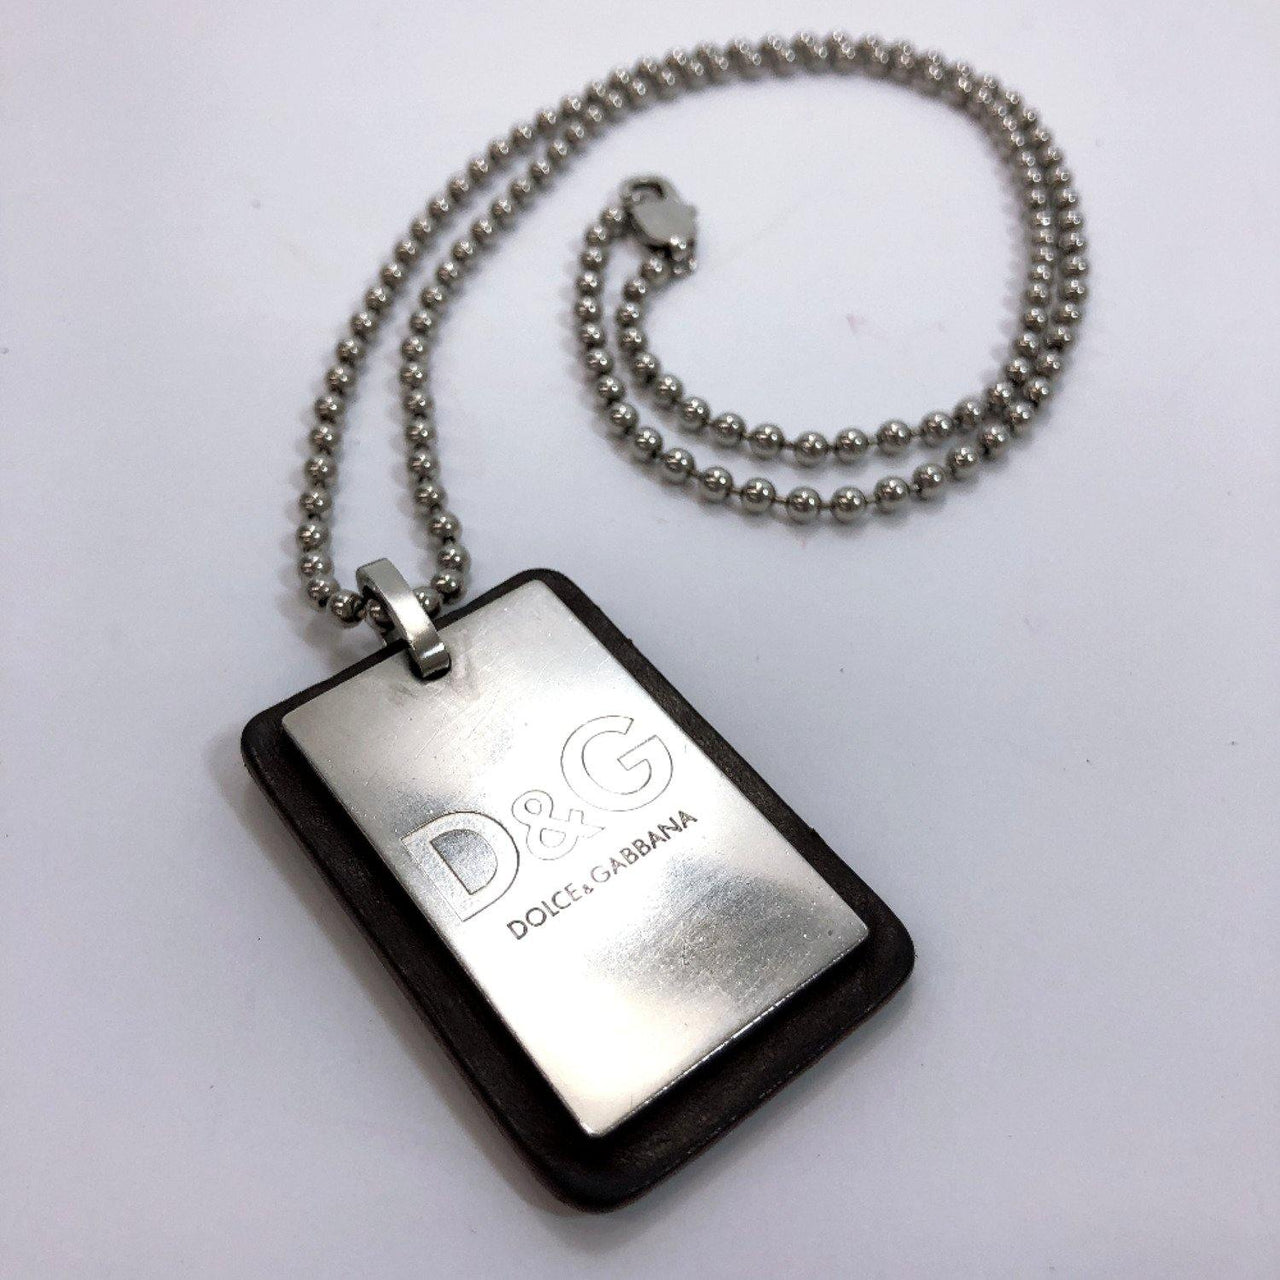 DOLCE&GABBANA Necklace metal Silver black mens Used - JP-BRANDS.com